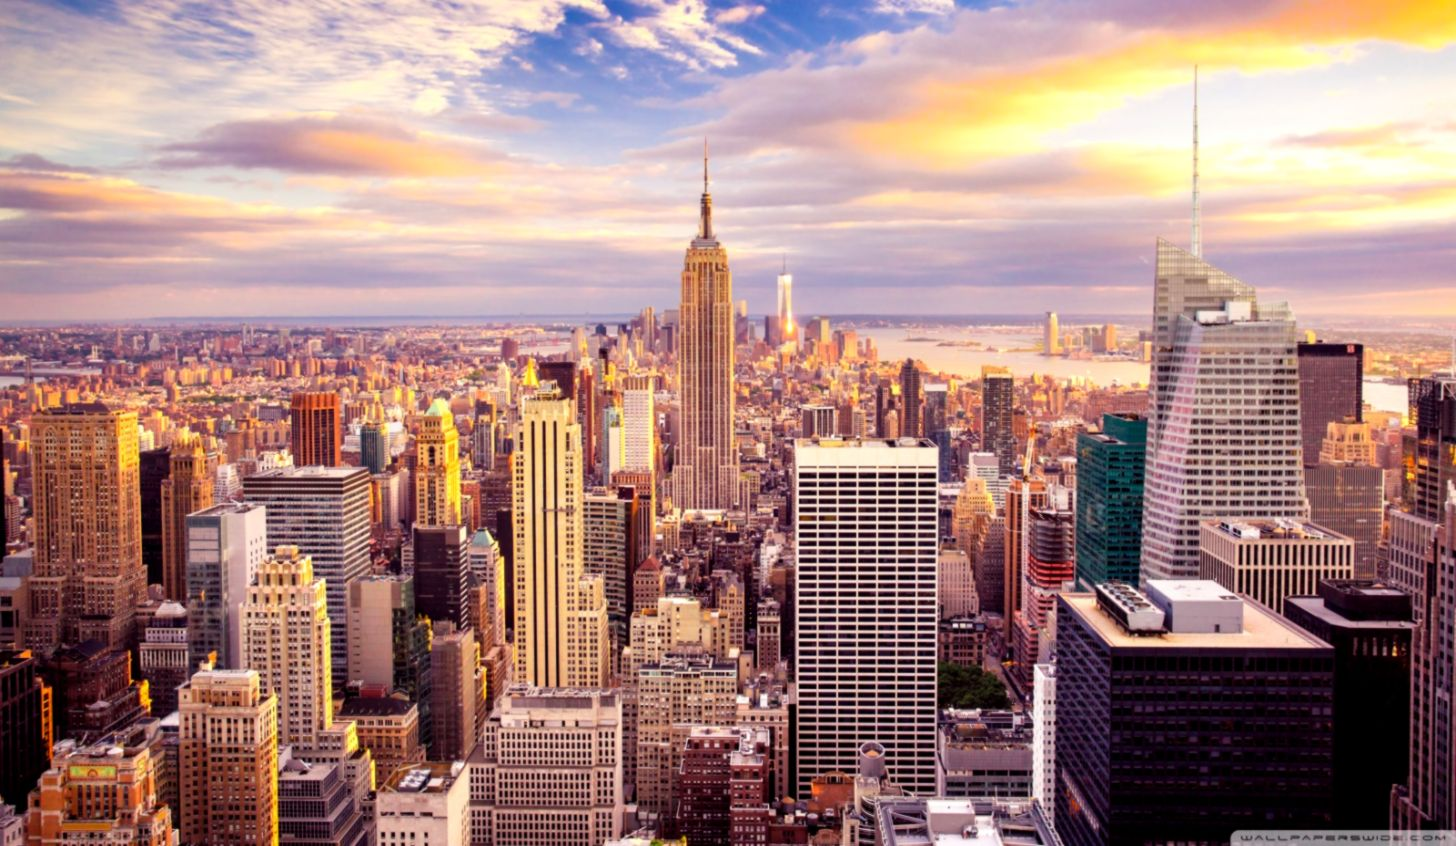 Buildings New York City Photo Hd Wallpaper Wallpapers Home Screen 1456x846